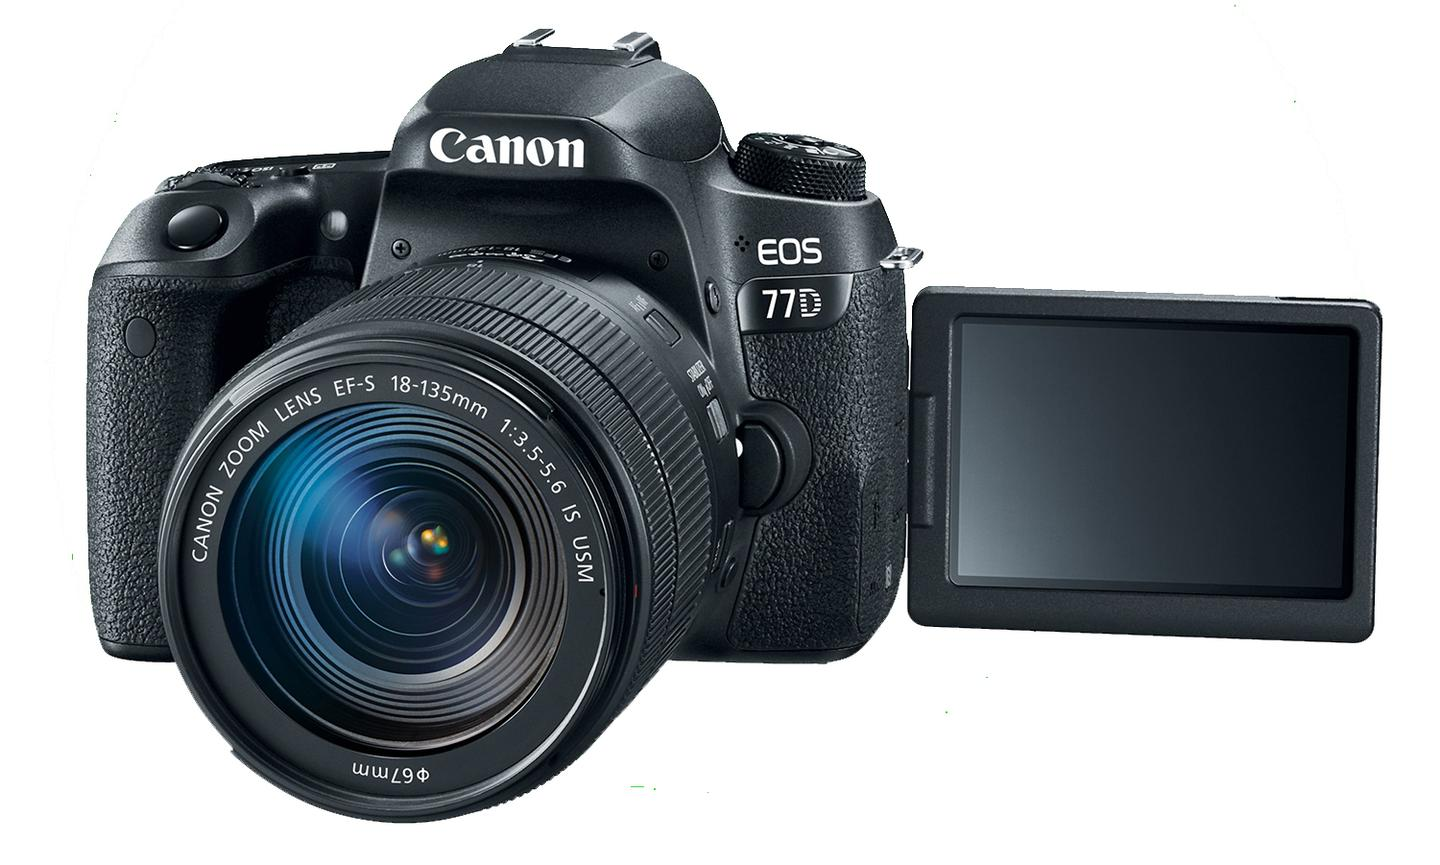 The Canon EOS77D features a 3-inch vari-angle LCD monitor